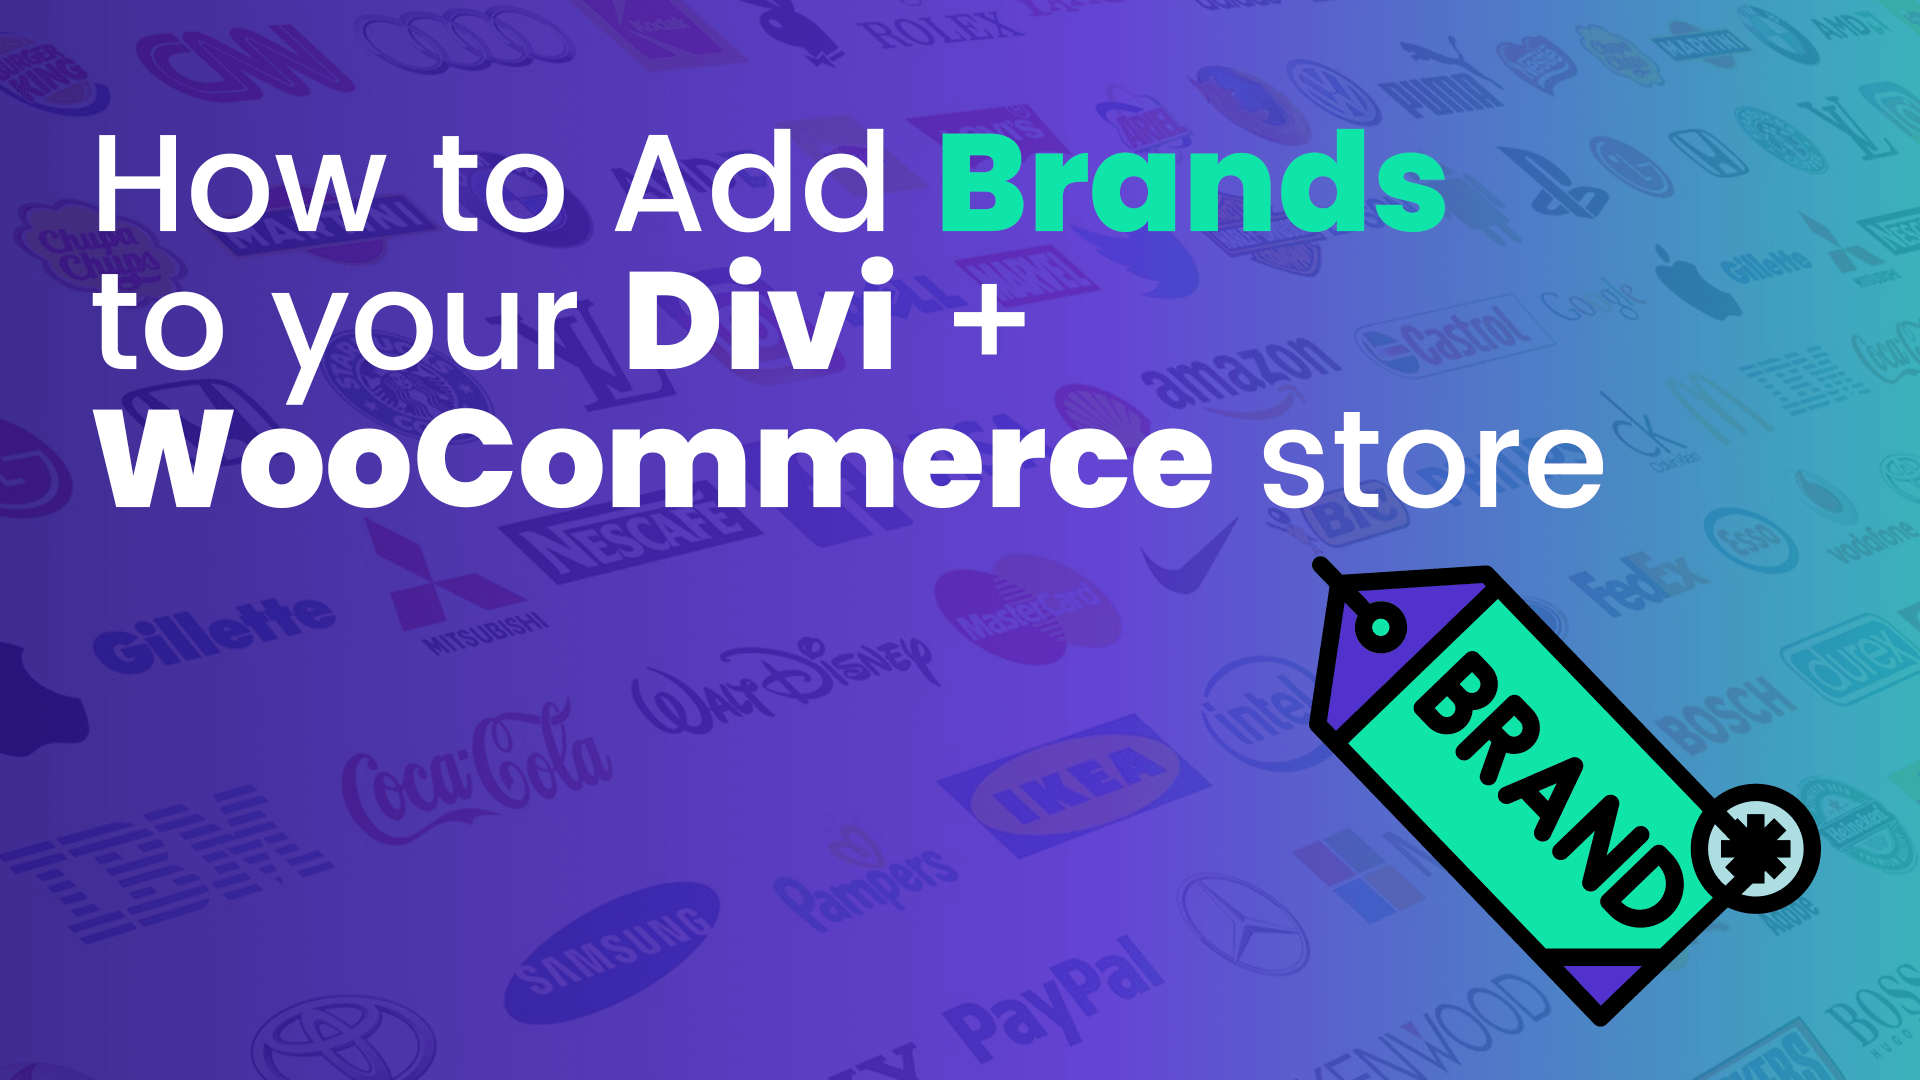 How to Add Brands to your Divi WooCommerce Store